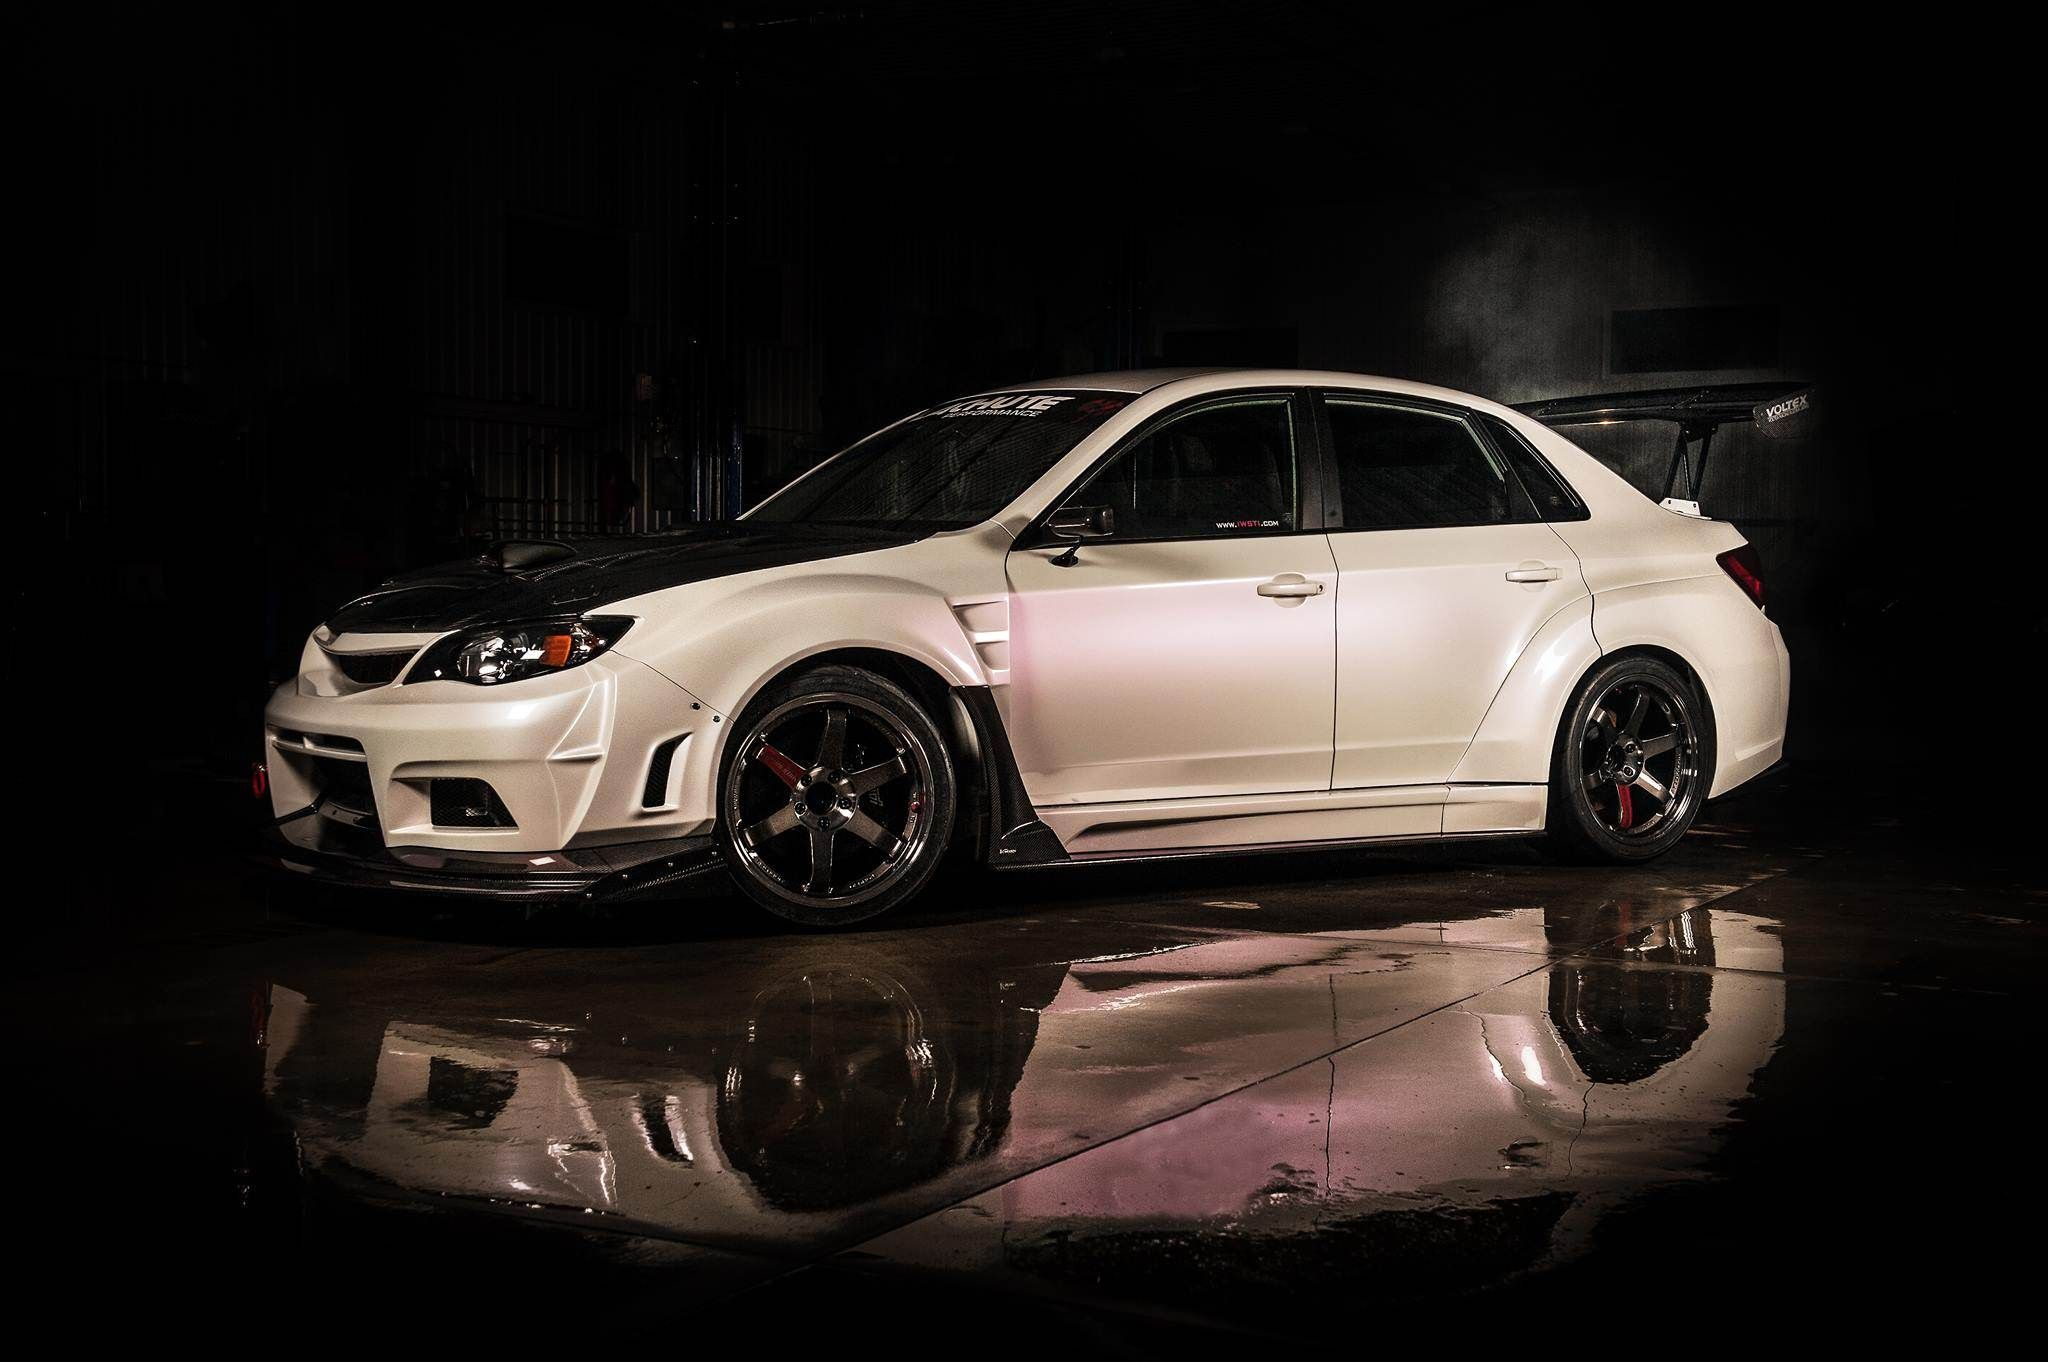 Pin by RAWMADE™ on [Whip] JDM × Subaru (With images